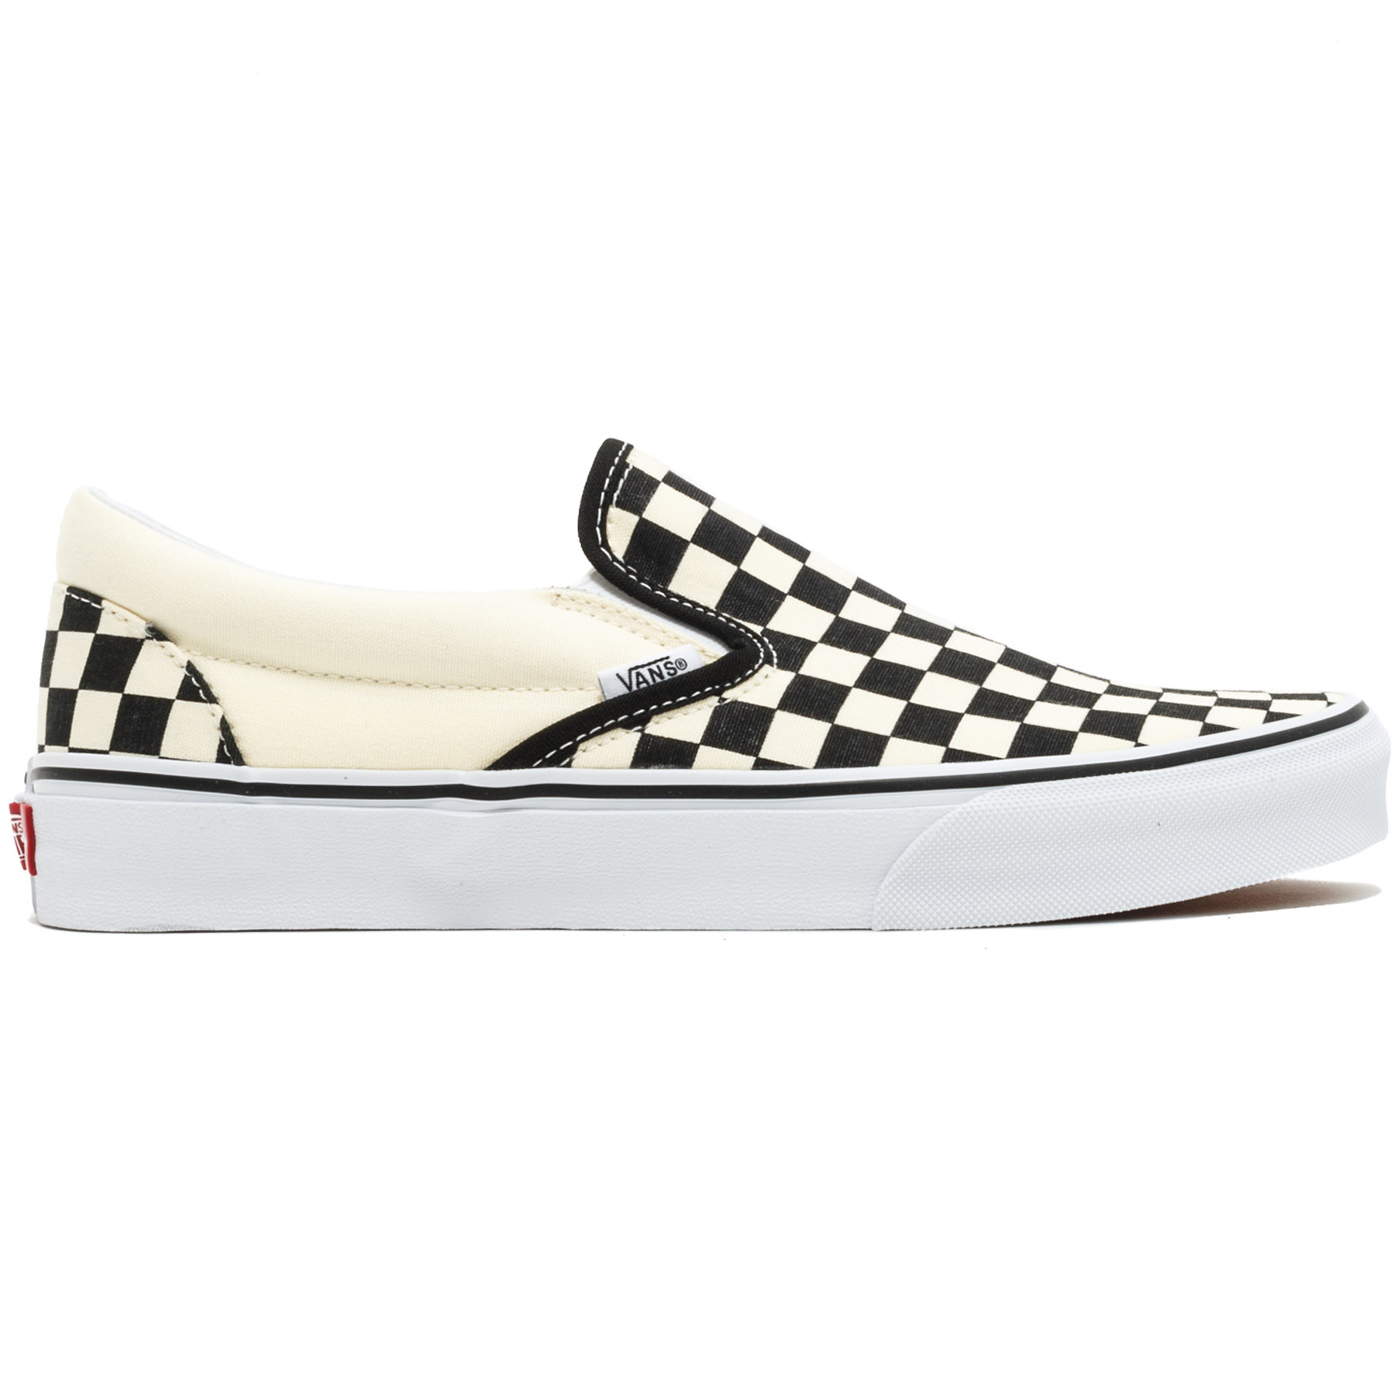 Vans Classic Slip-On Checkerboard Slipper beige schwarz VN000EYEBWW 2af8f2cf4